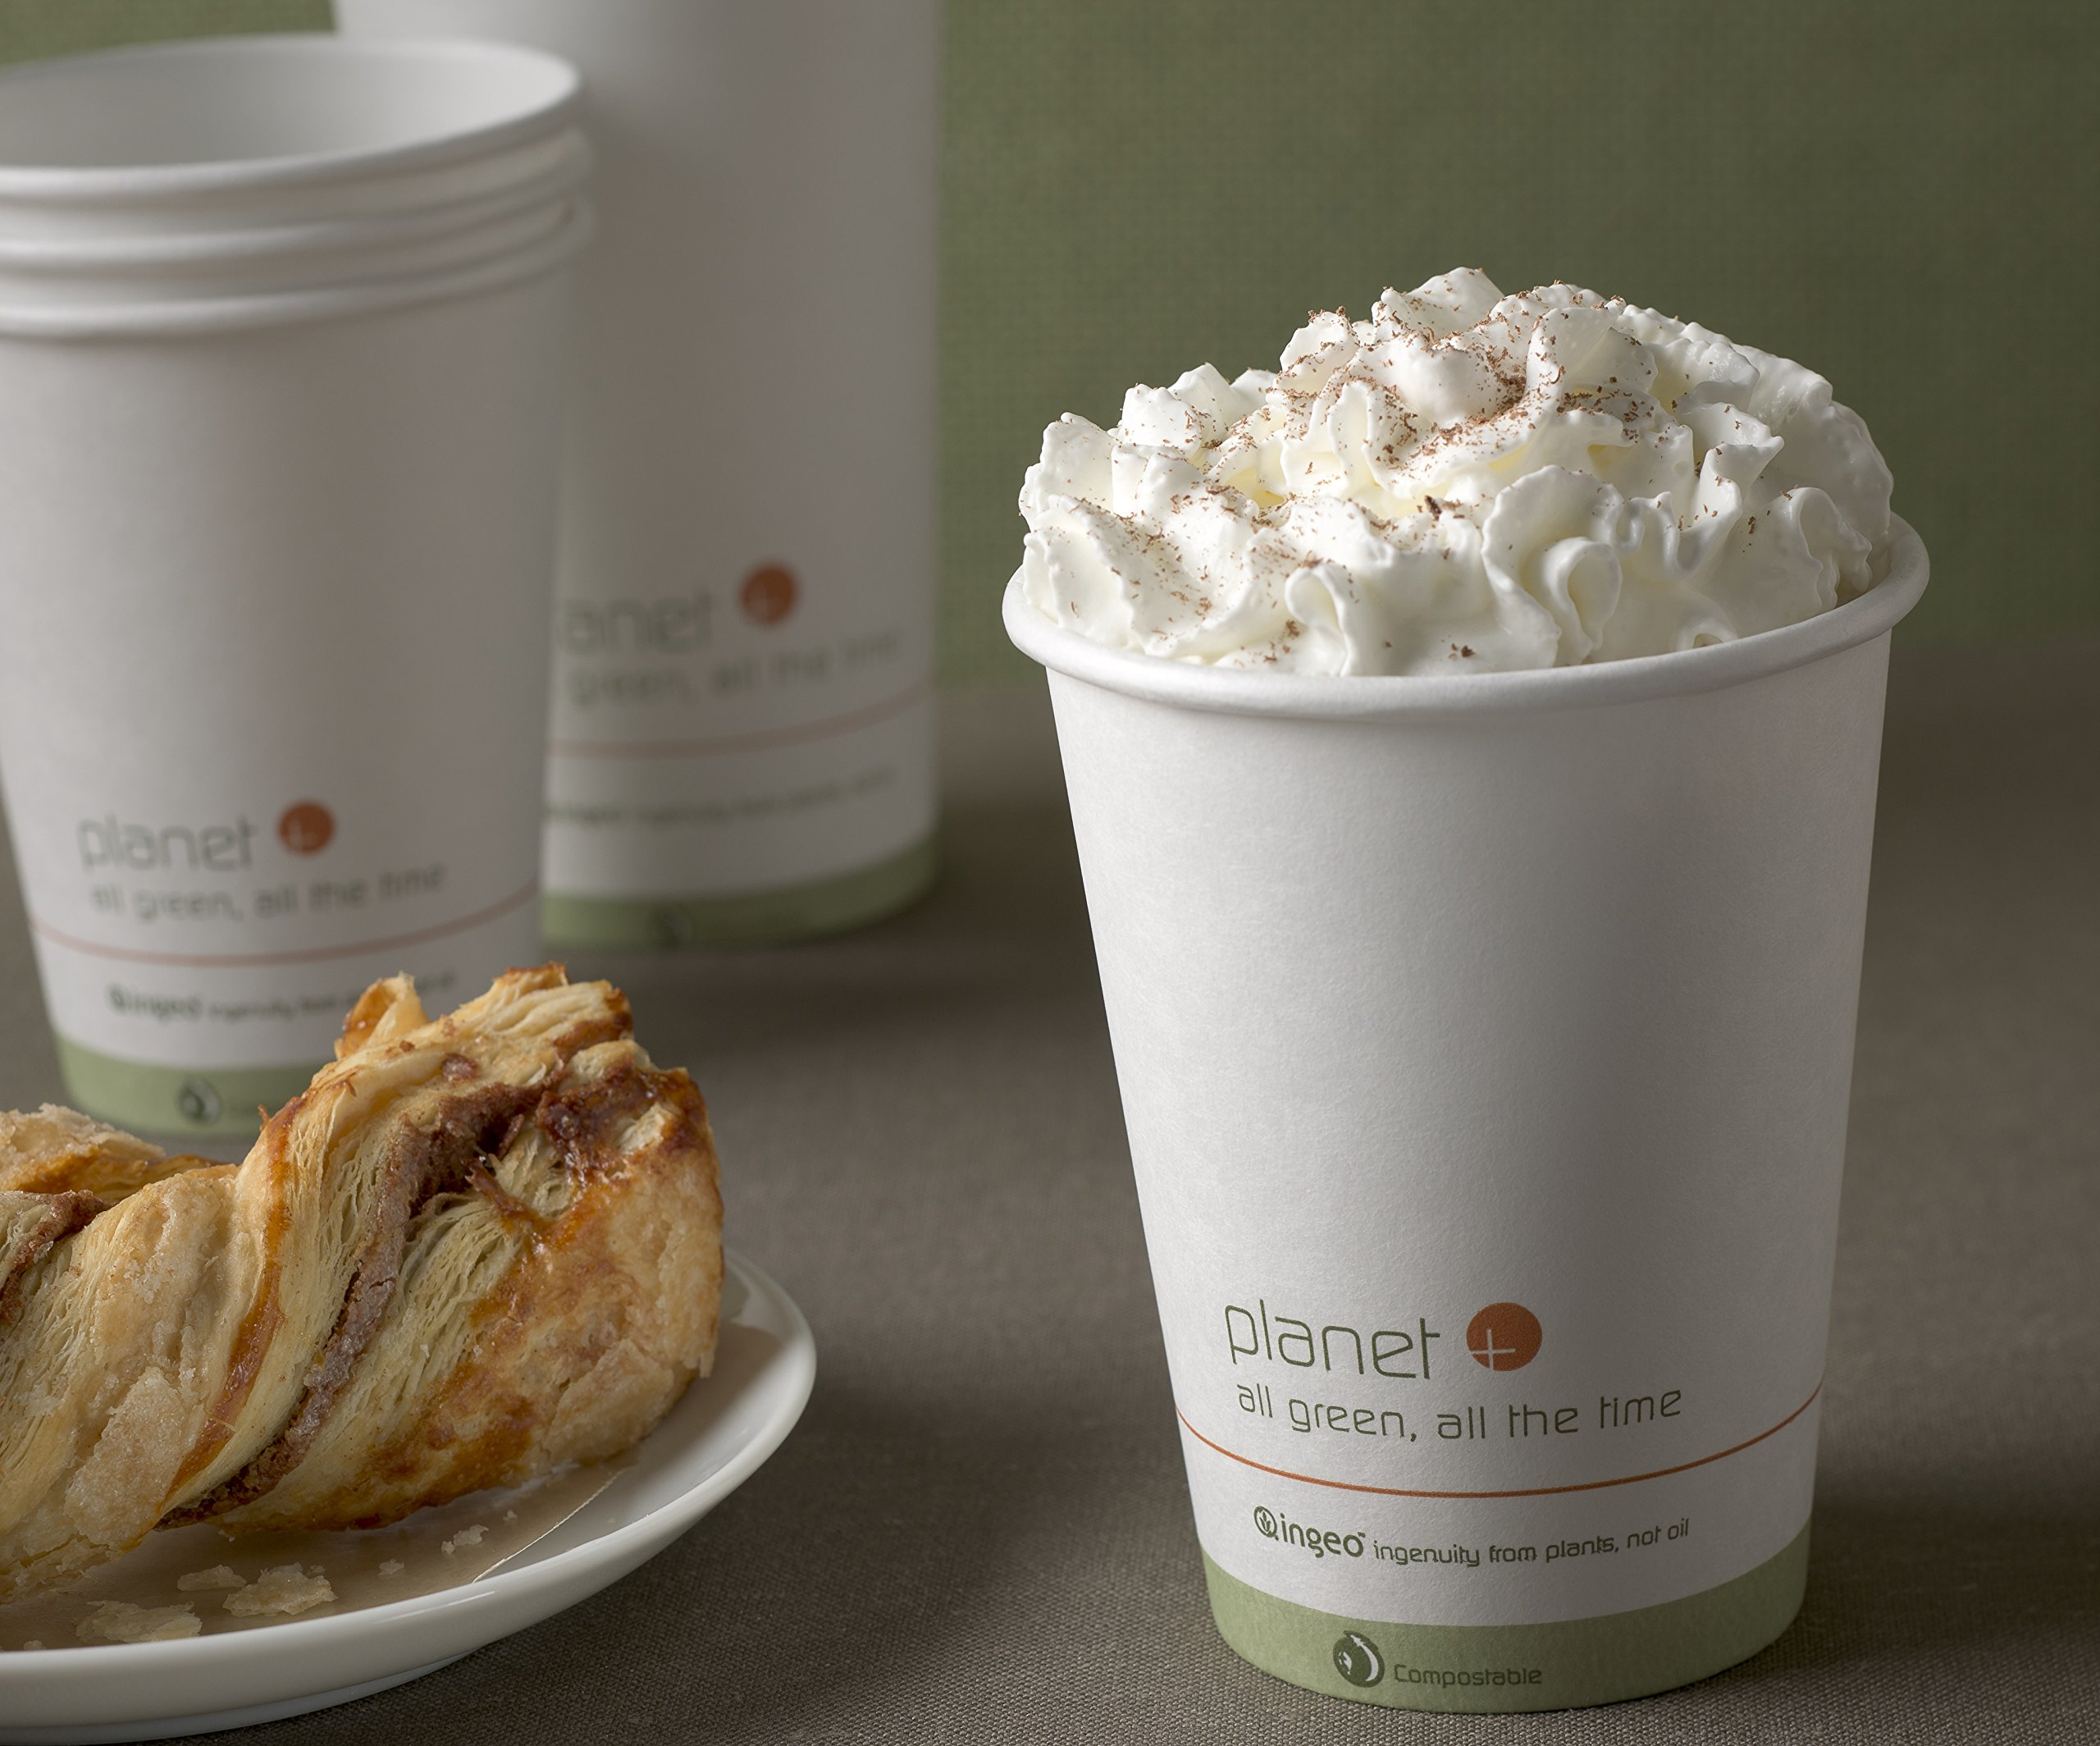 Planet + 100% Compostable PLA Laminated Hot Cup, 12-Ounce, 1000-Count Case by Stalkmarket (Image #2)